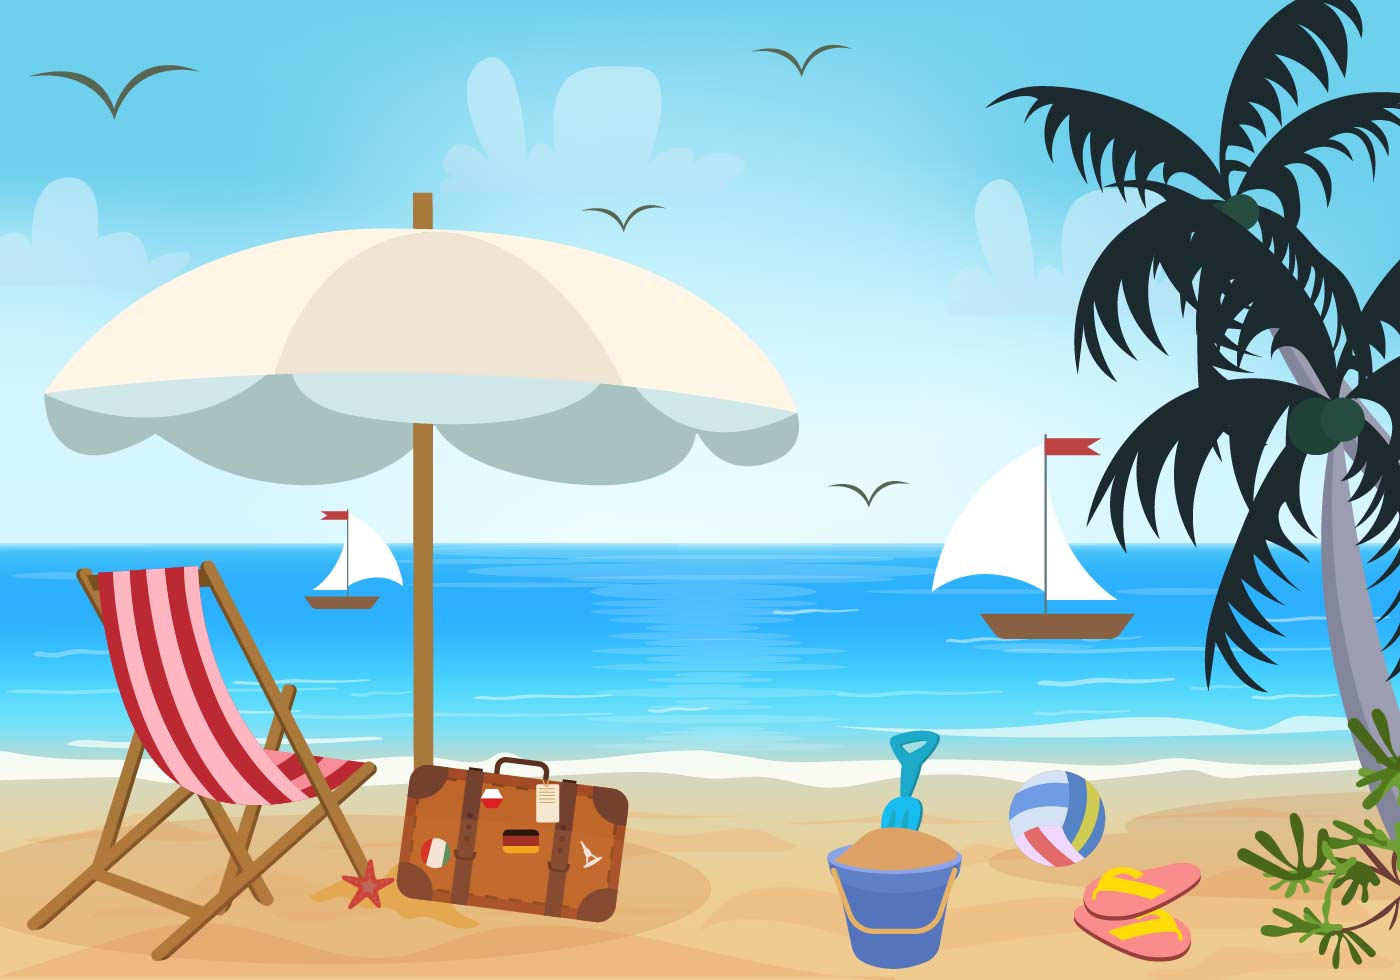 Beach Theme Vector - Download Free Vectors, Clipart ...